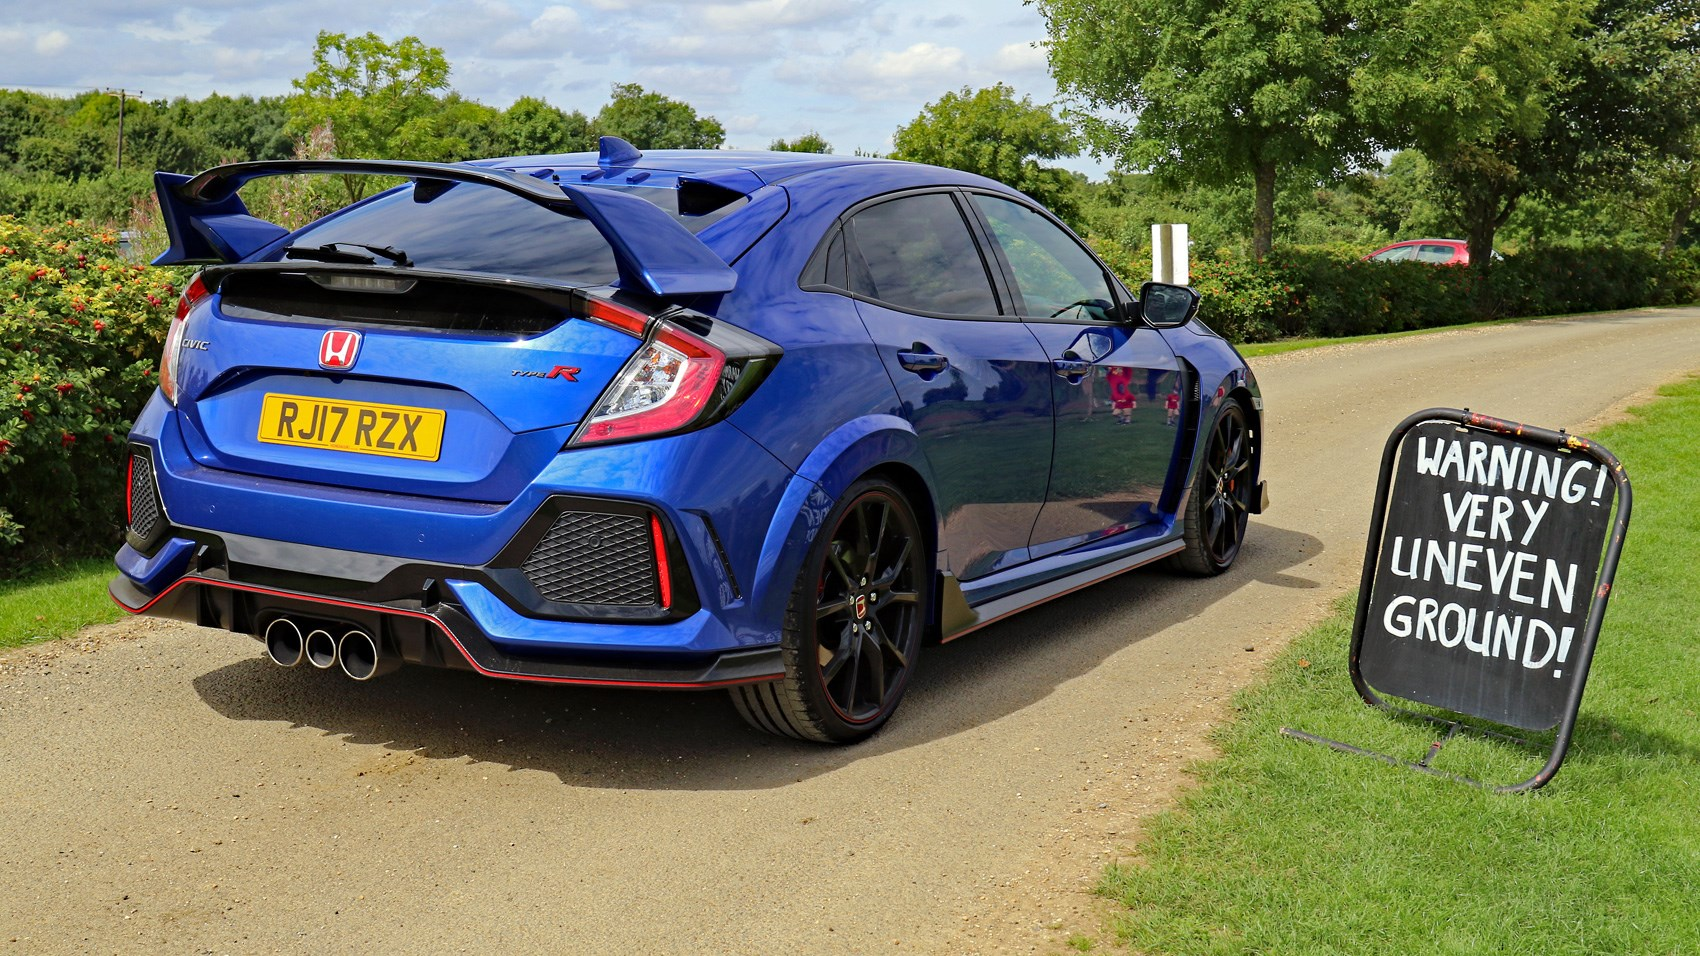 New meets old: 2007 Honda Civic Type-R FN2 and 2017 Type-R